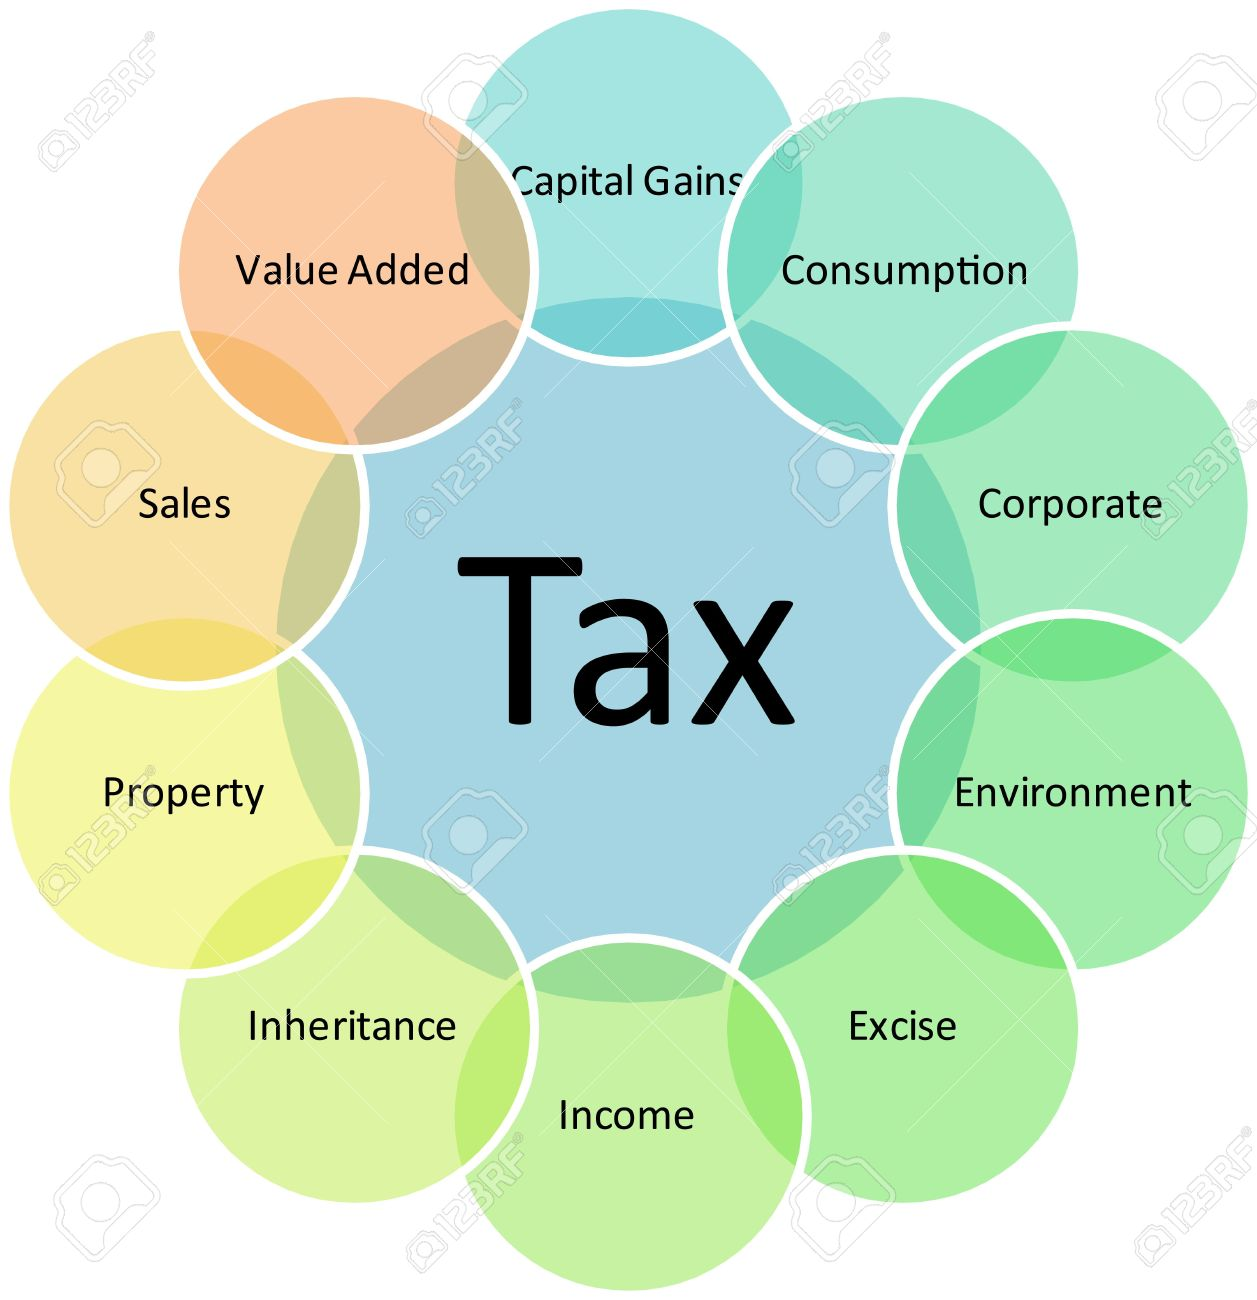 tax types management business strategy concept diagram illustration tax types management business strategy concept diagram illustration